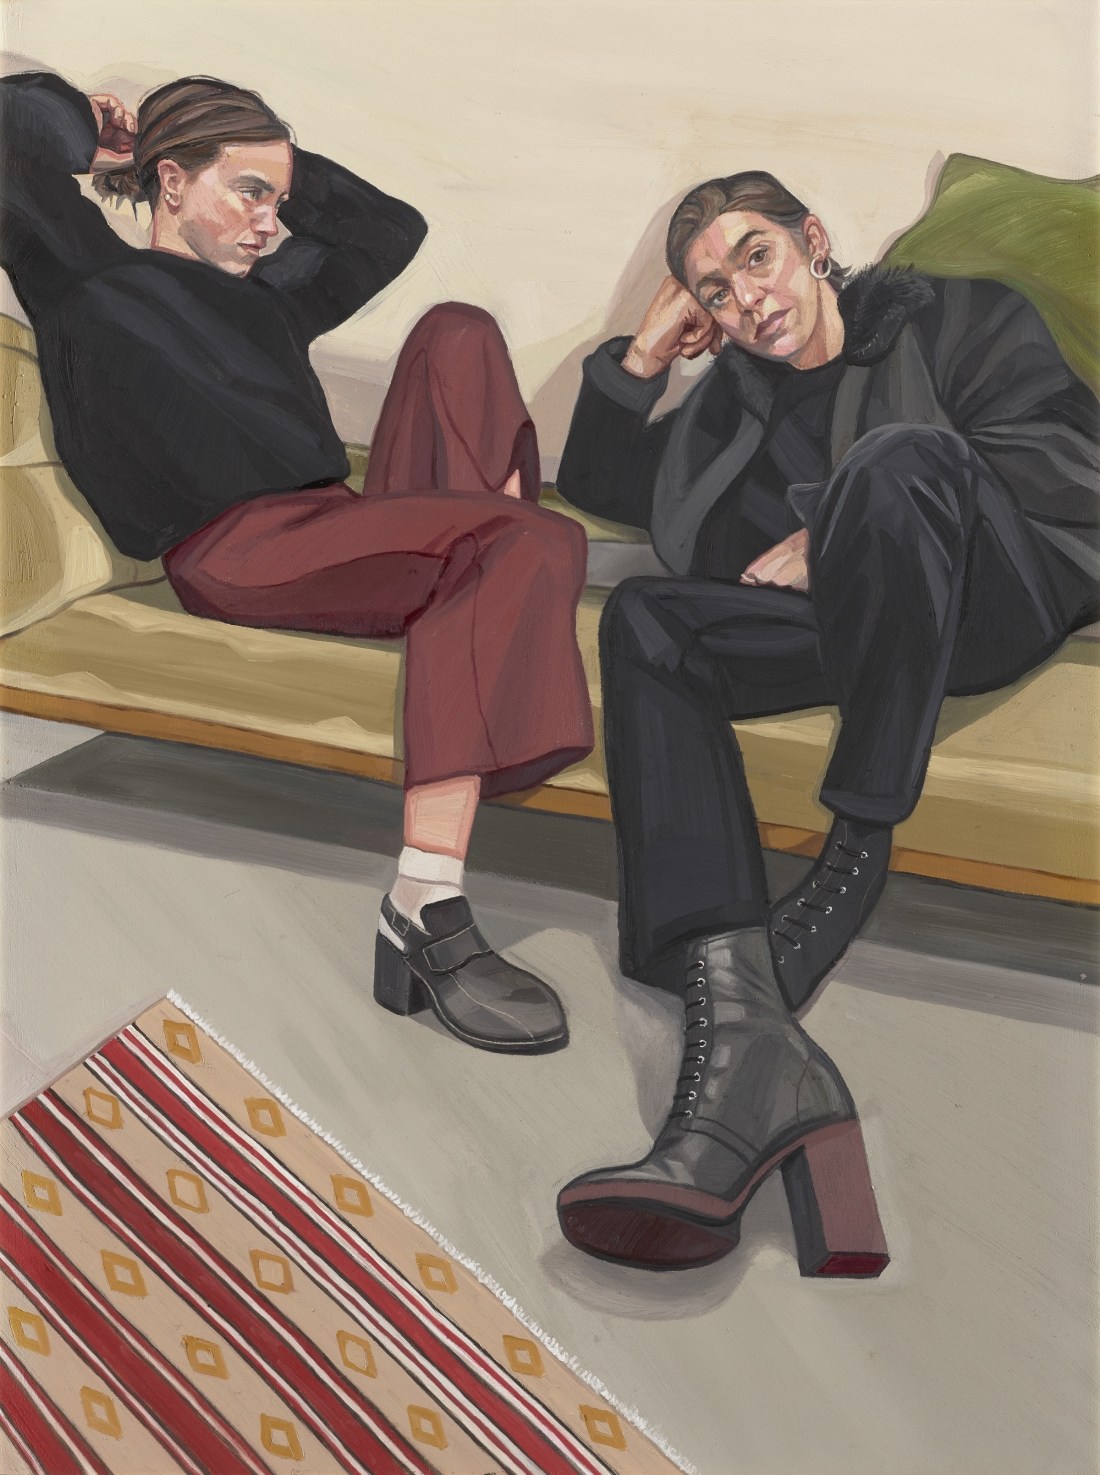 A Portrait of two Female Painters by Ania Hobson, 2018 © Ania Hobson